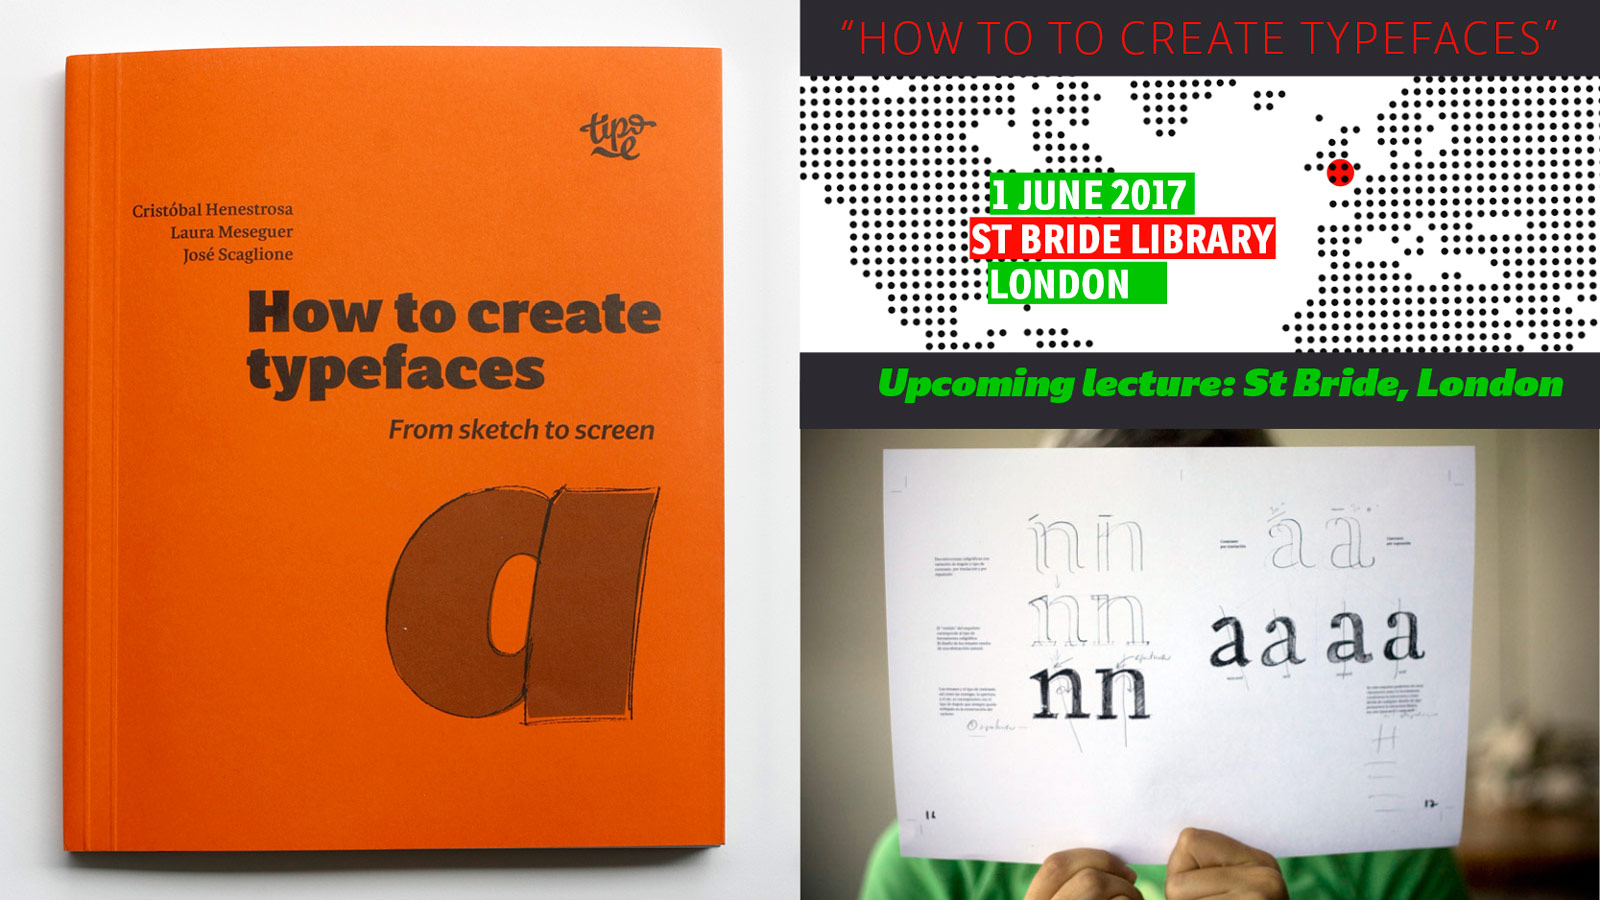 How to create typefaces